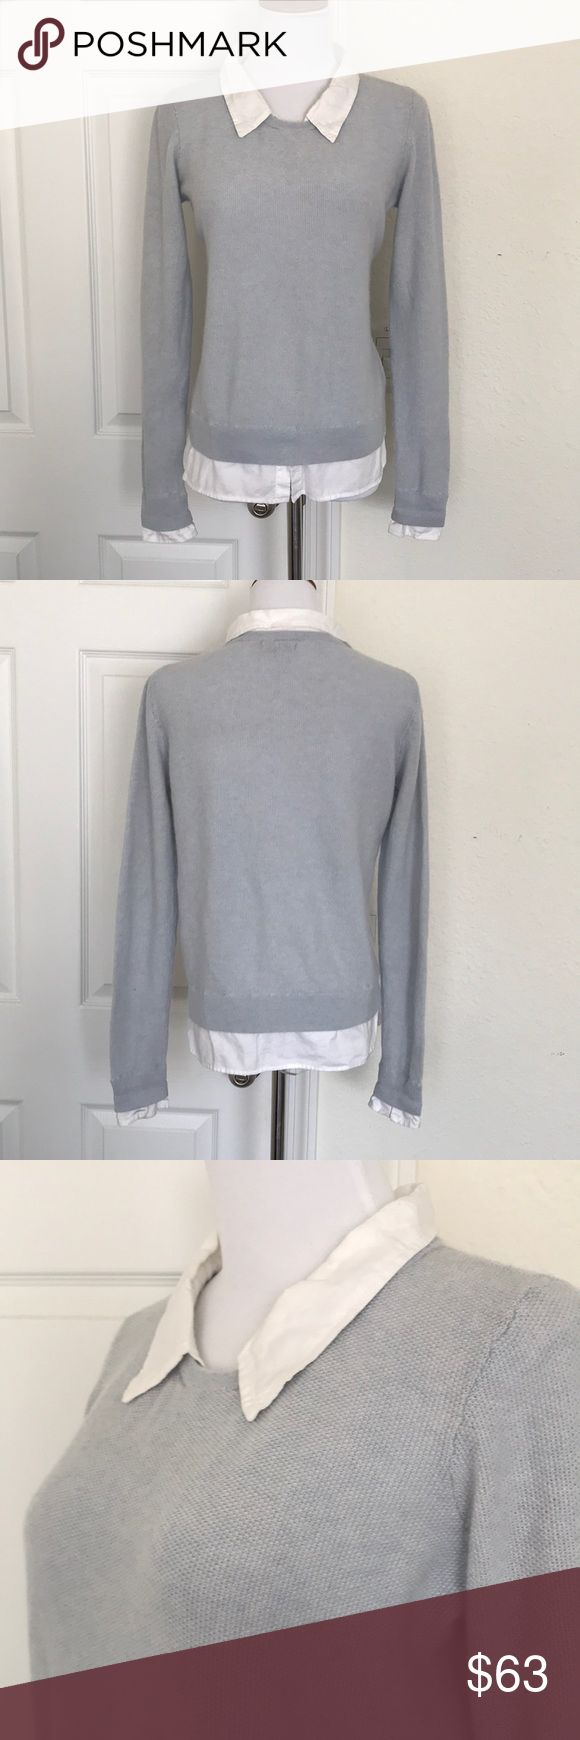 """NWOT Joie Cashmere Wool Blend Layered Top Joie baby blue and white shirt. Faux """"pullover over collared shirt"""" style. Never worn. Chest is 40 inches. Length is 23.25 inches. Hand wash cold. Joie Tops"""